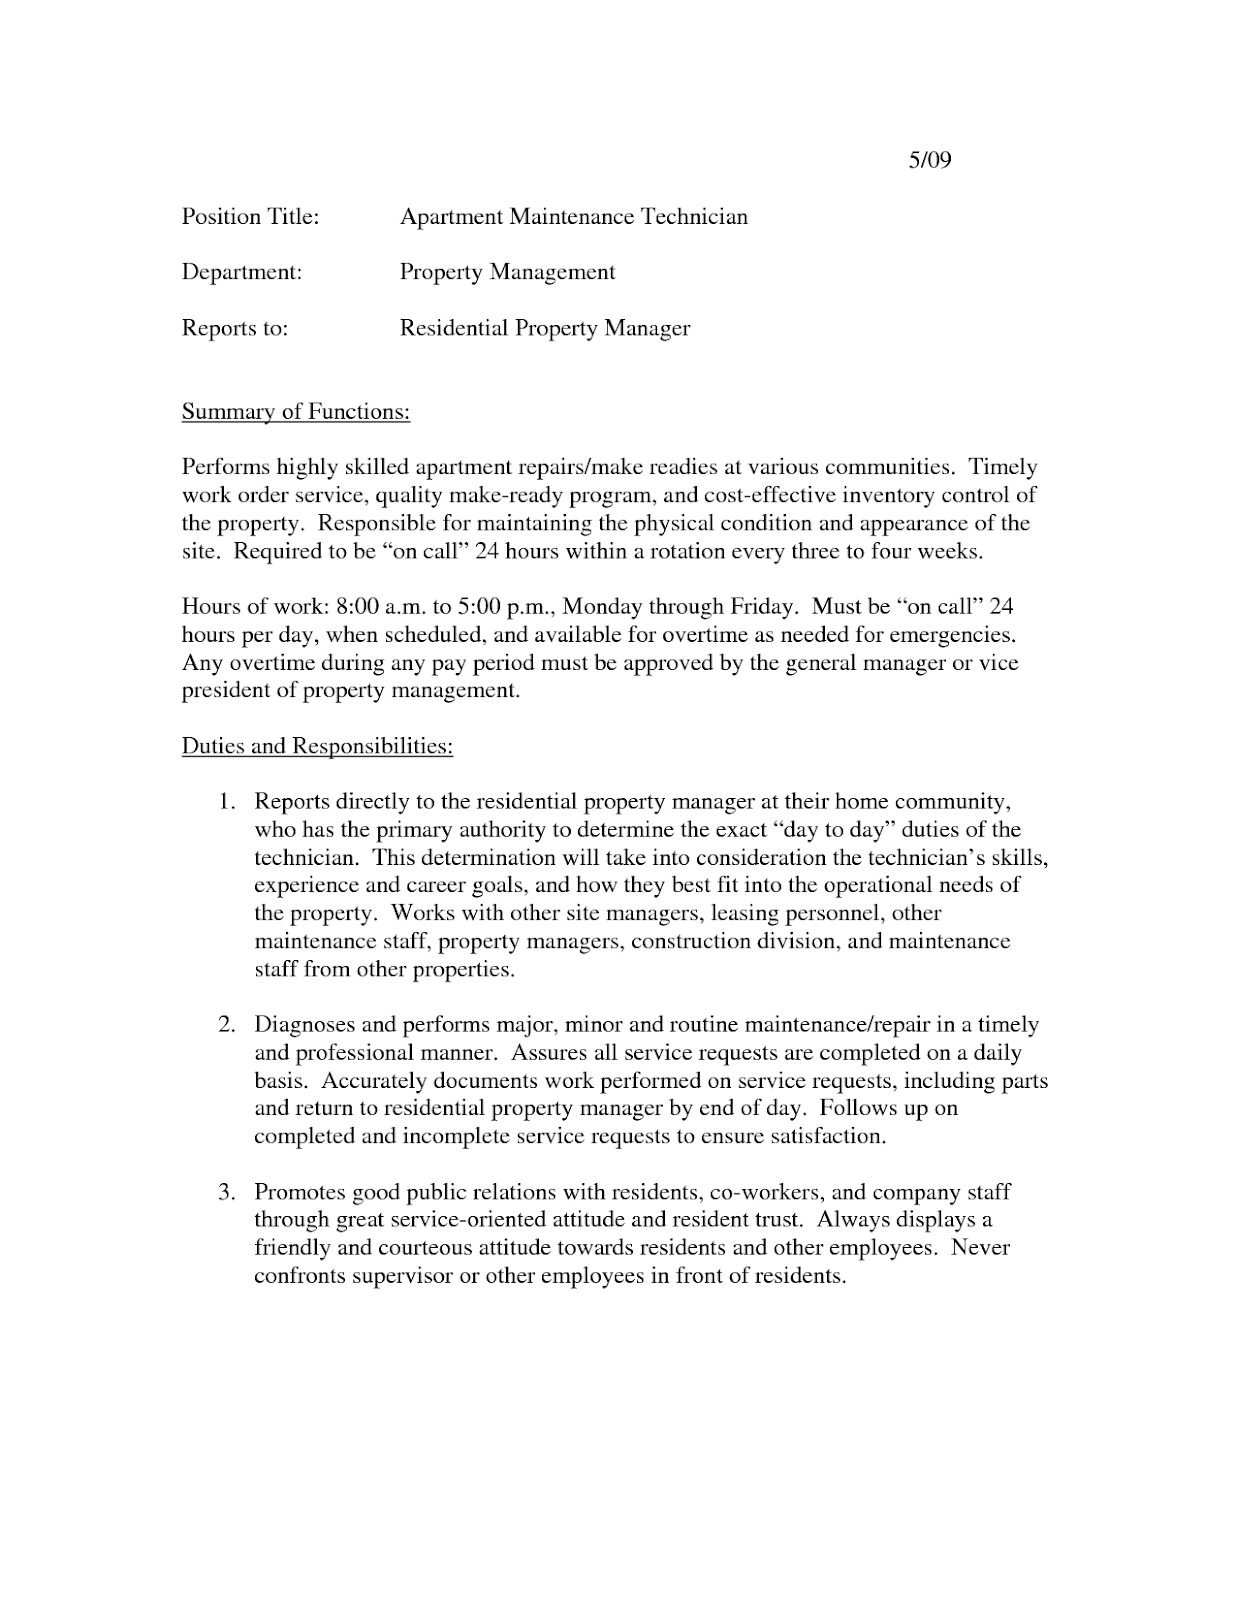 apartment maintenance technician resume writing a professional summary for examples of skills and strengths physician template word